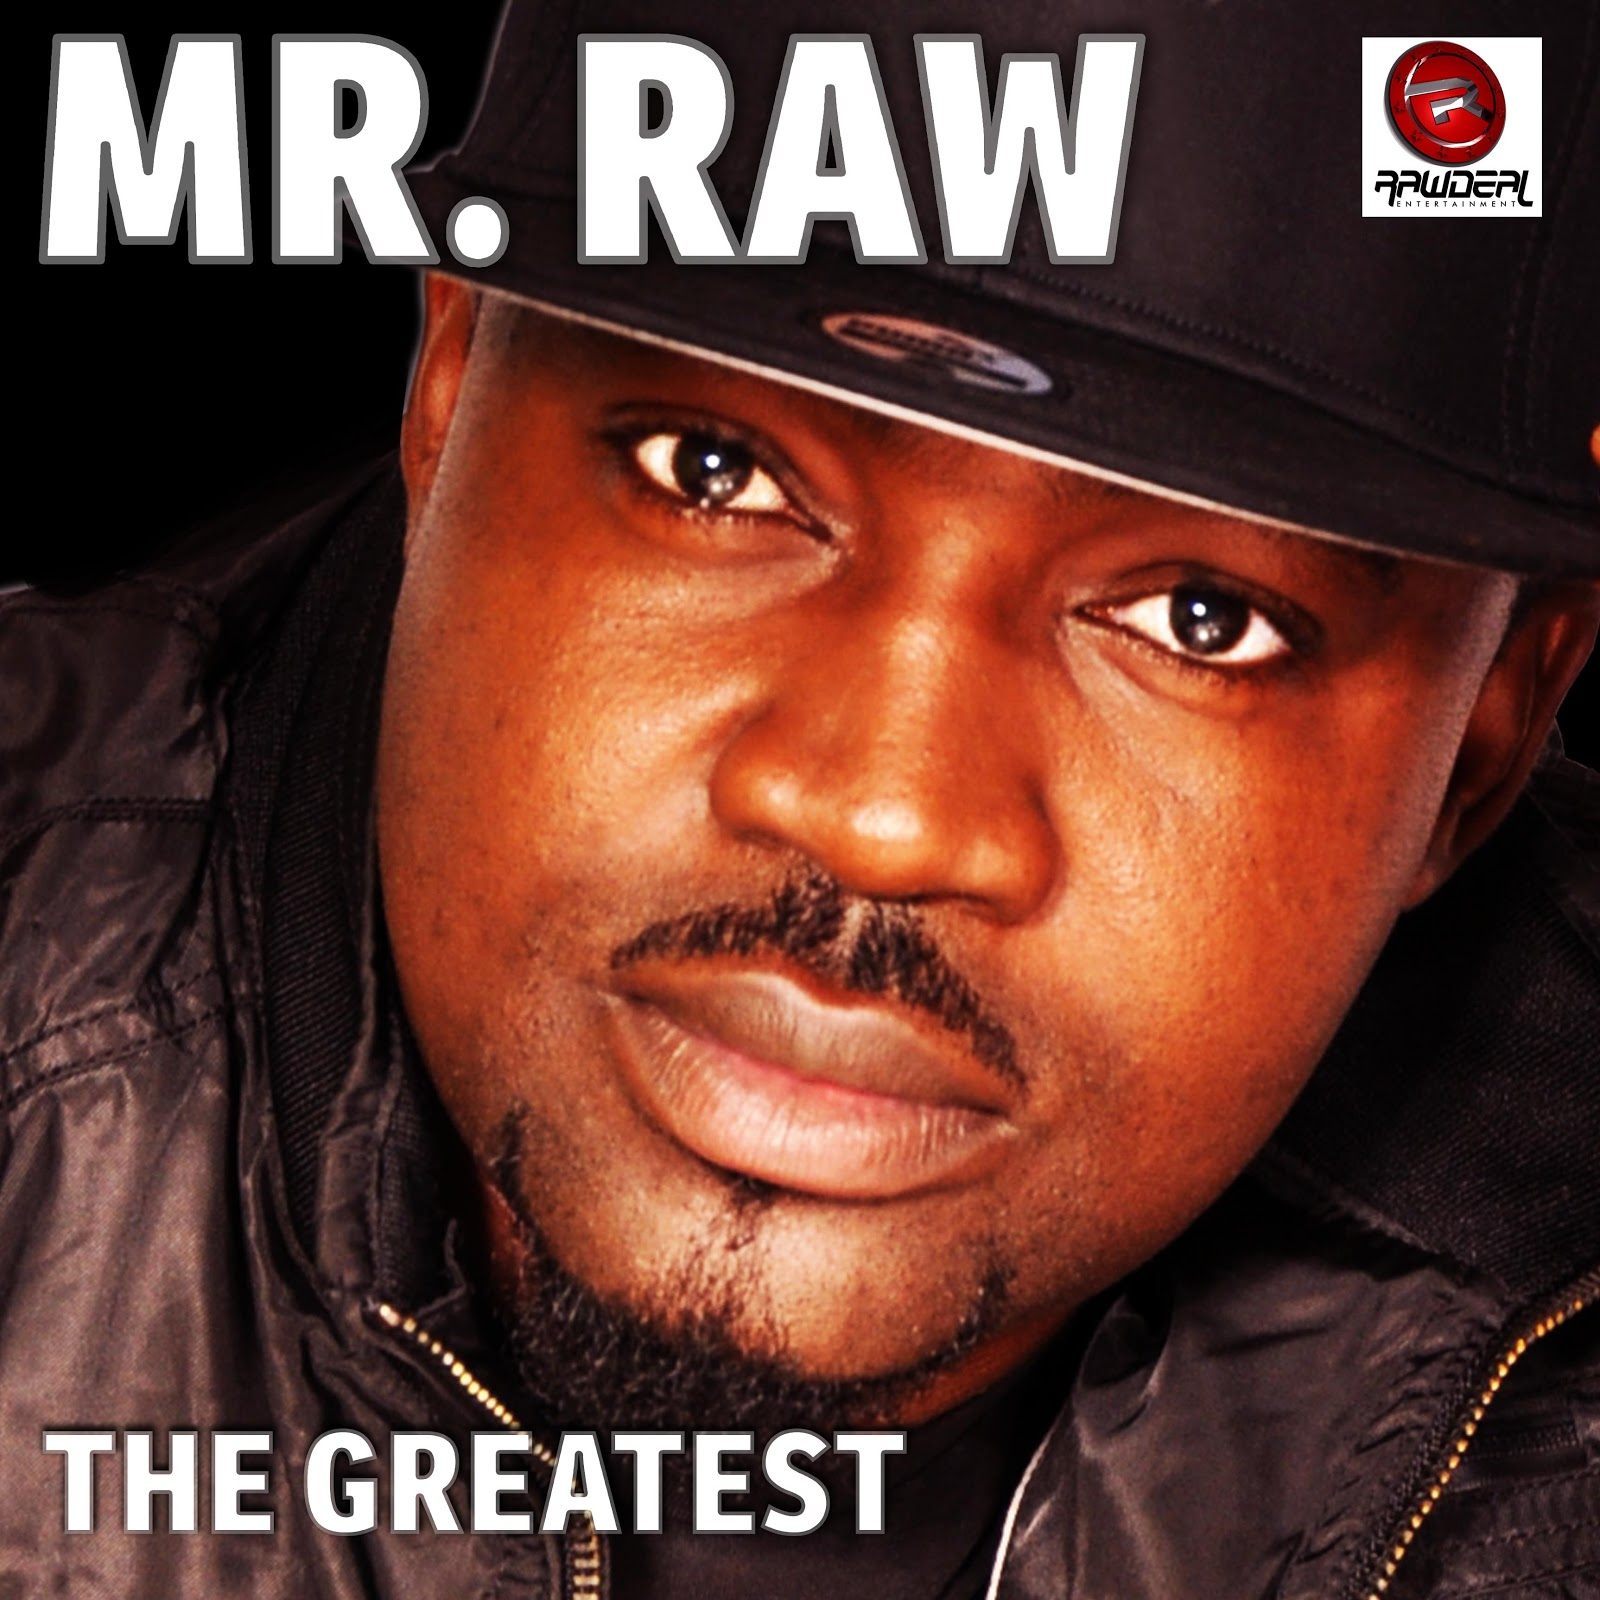 Mr. Raw - The Greatest Artwork | AceWorldTeam.com